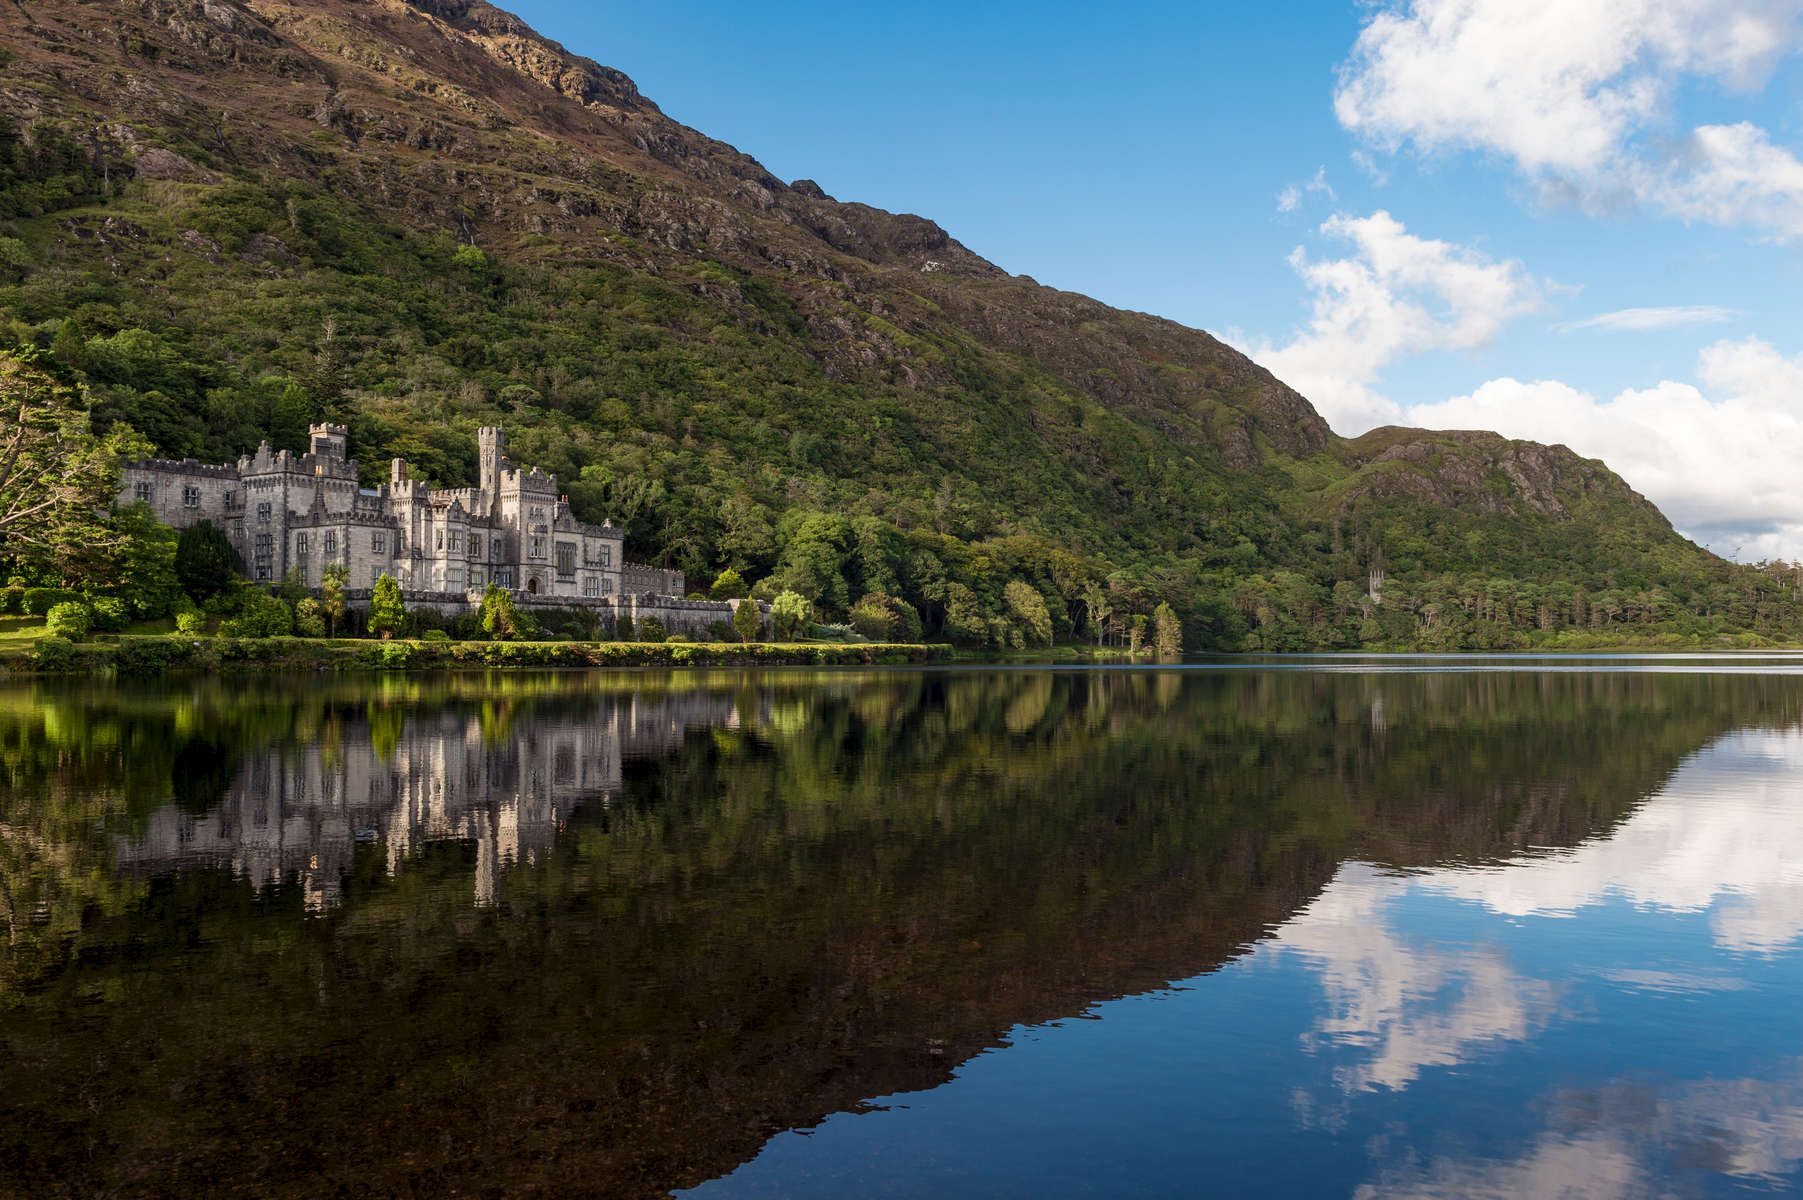 Kylemore Abbey, Connemara, County Galway, Ireland.